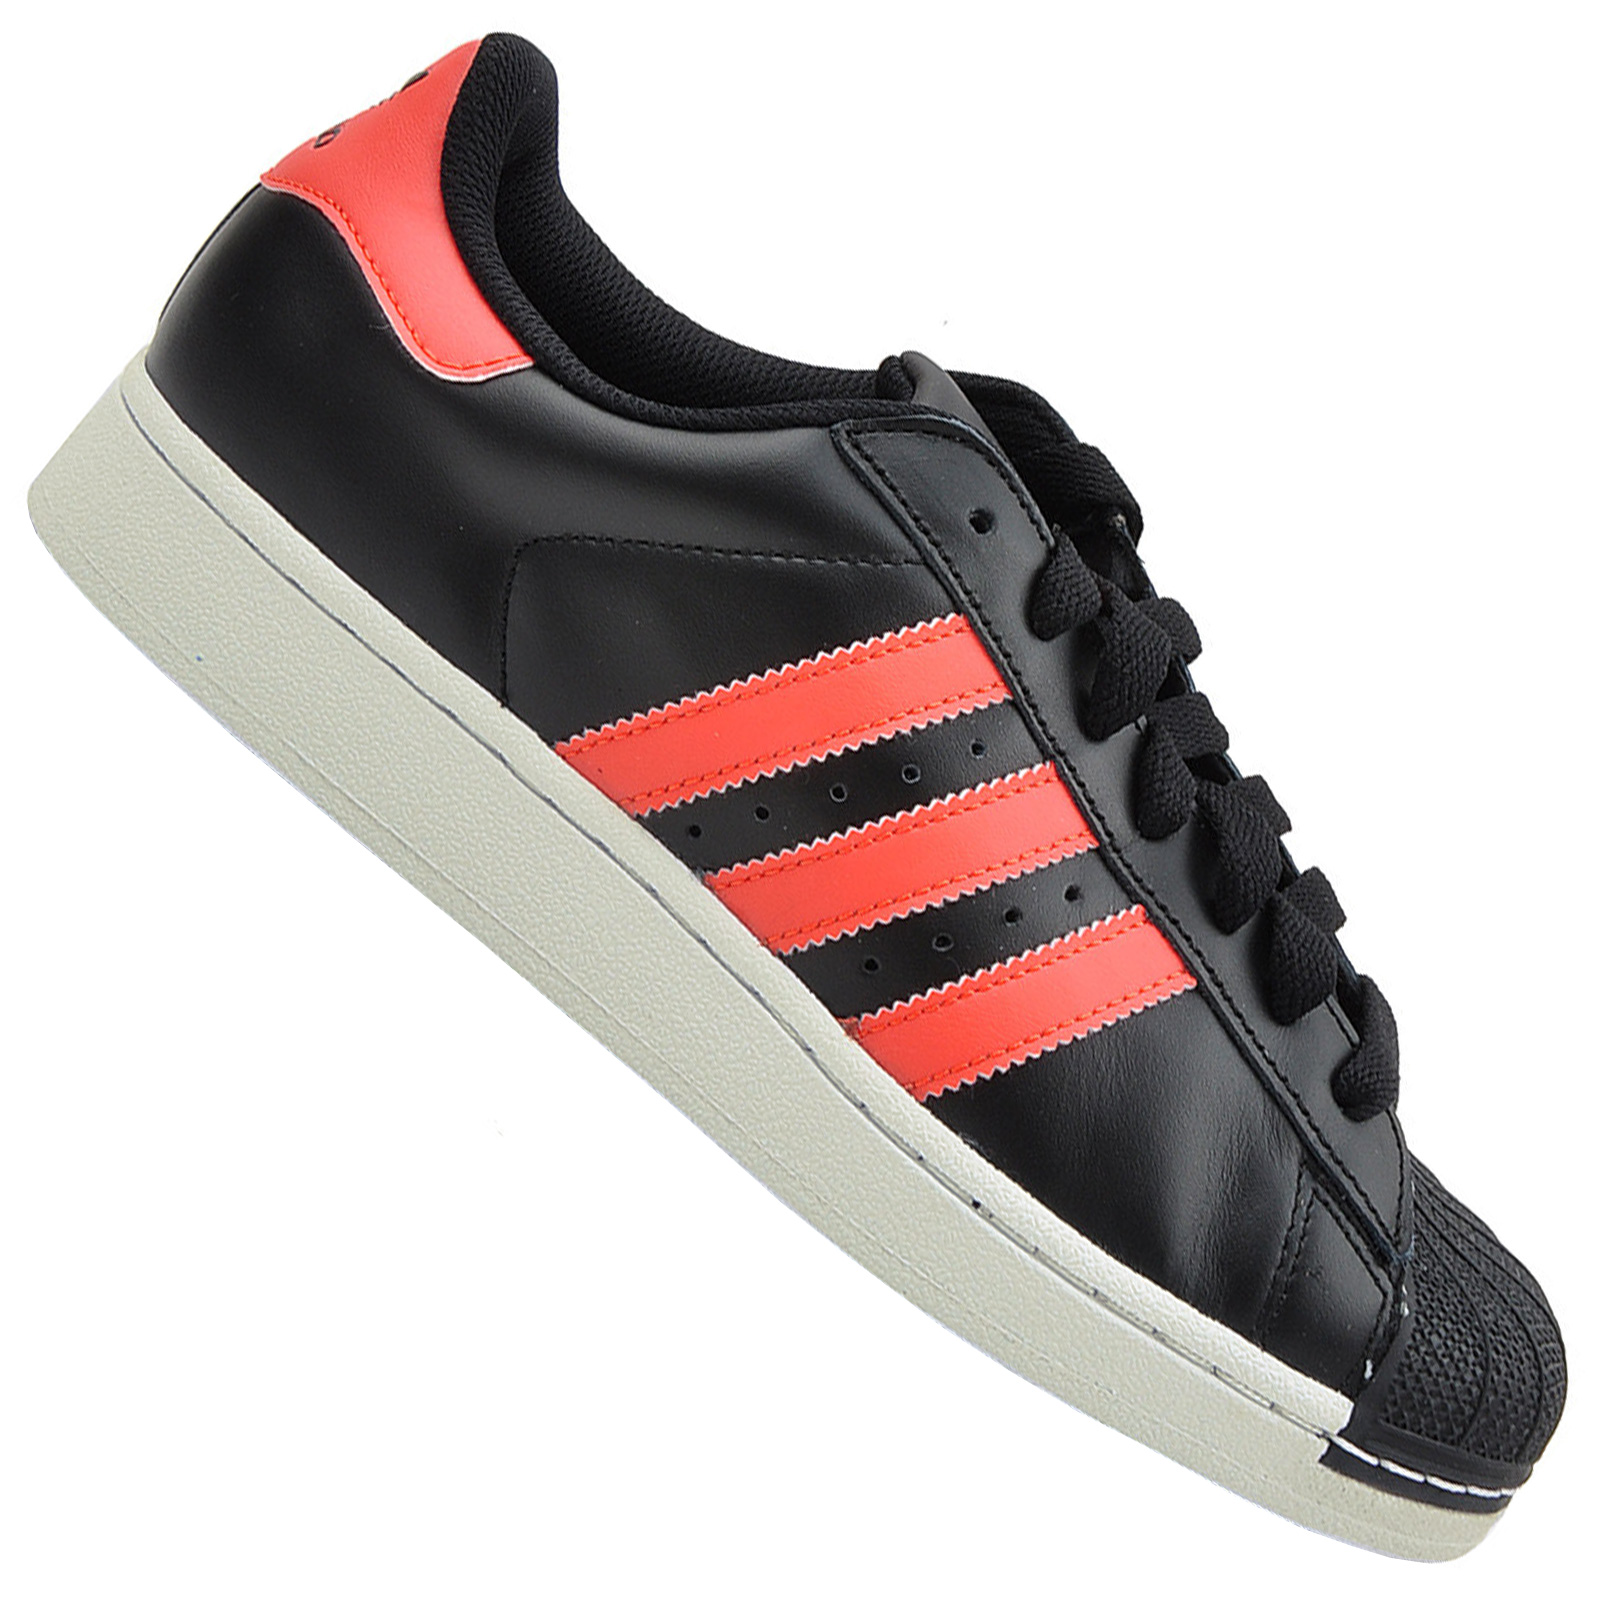 Details about Adidas Superstar II Shoes Retro Sneaker Casual Trainers G95788 Black Red